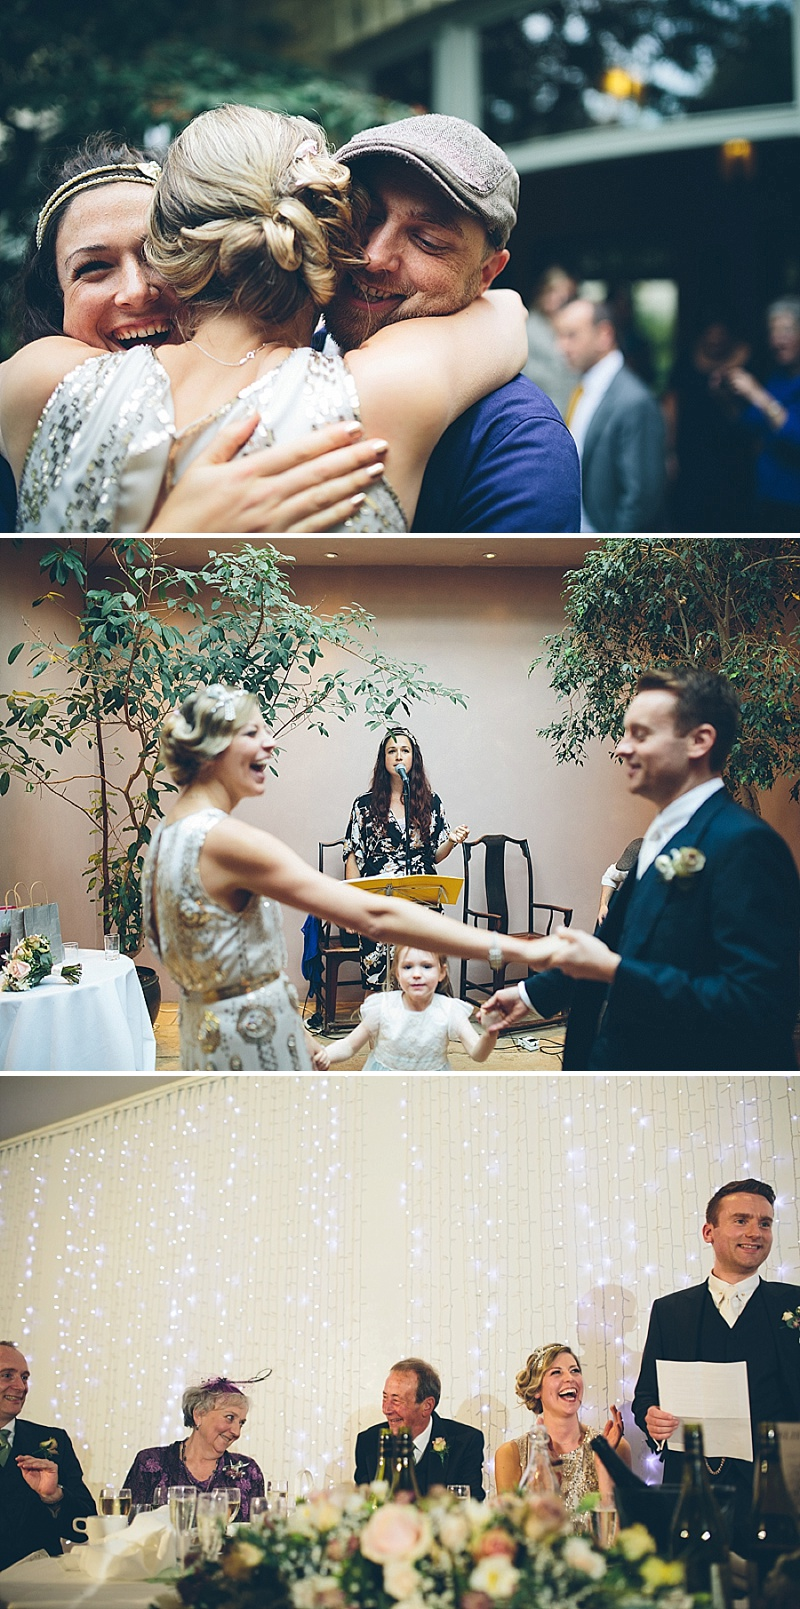 Art Deco and 1920s Inspired Wedding At The Matara Centre Gloucestershire With Bride In Joy By Jenny Packham and Bridesmaids in No 1 by Jenny Packham At Debenhams With Vintage Details and Speakeasy Themed Cocktails 8